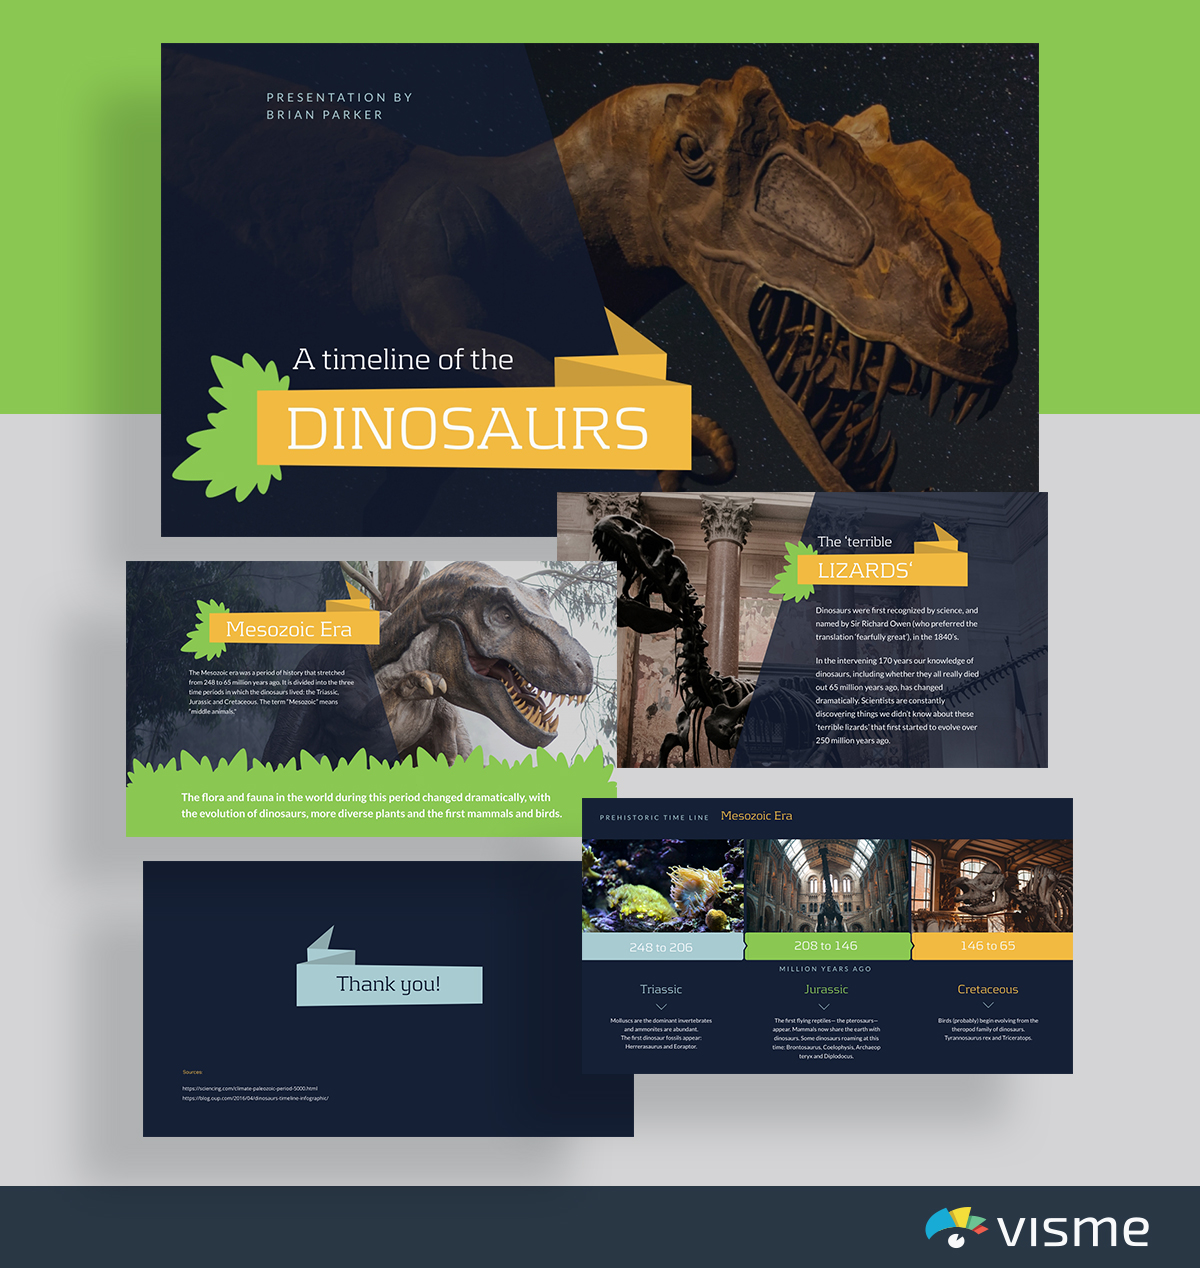 education presentation layout template - dinosaur timeline